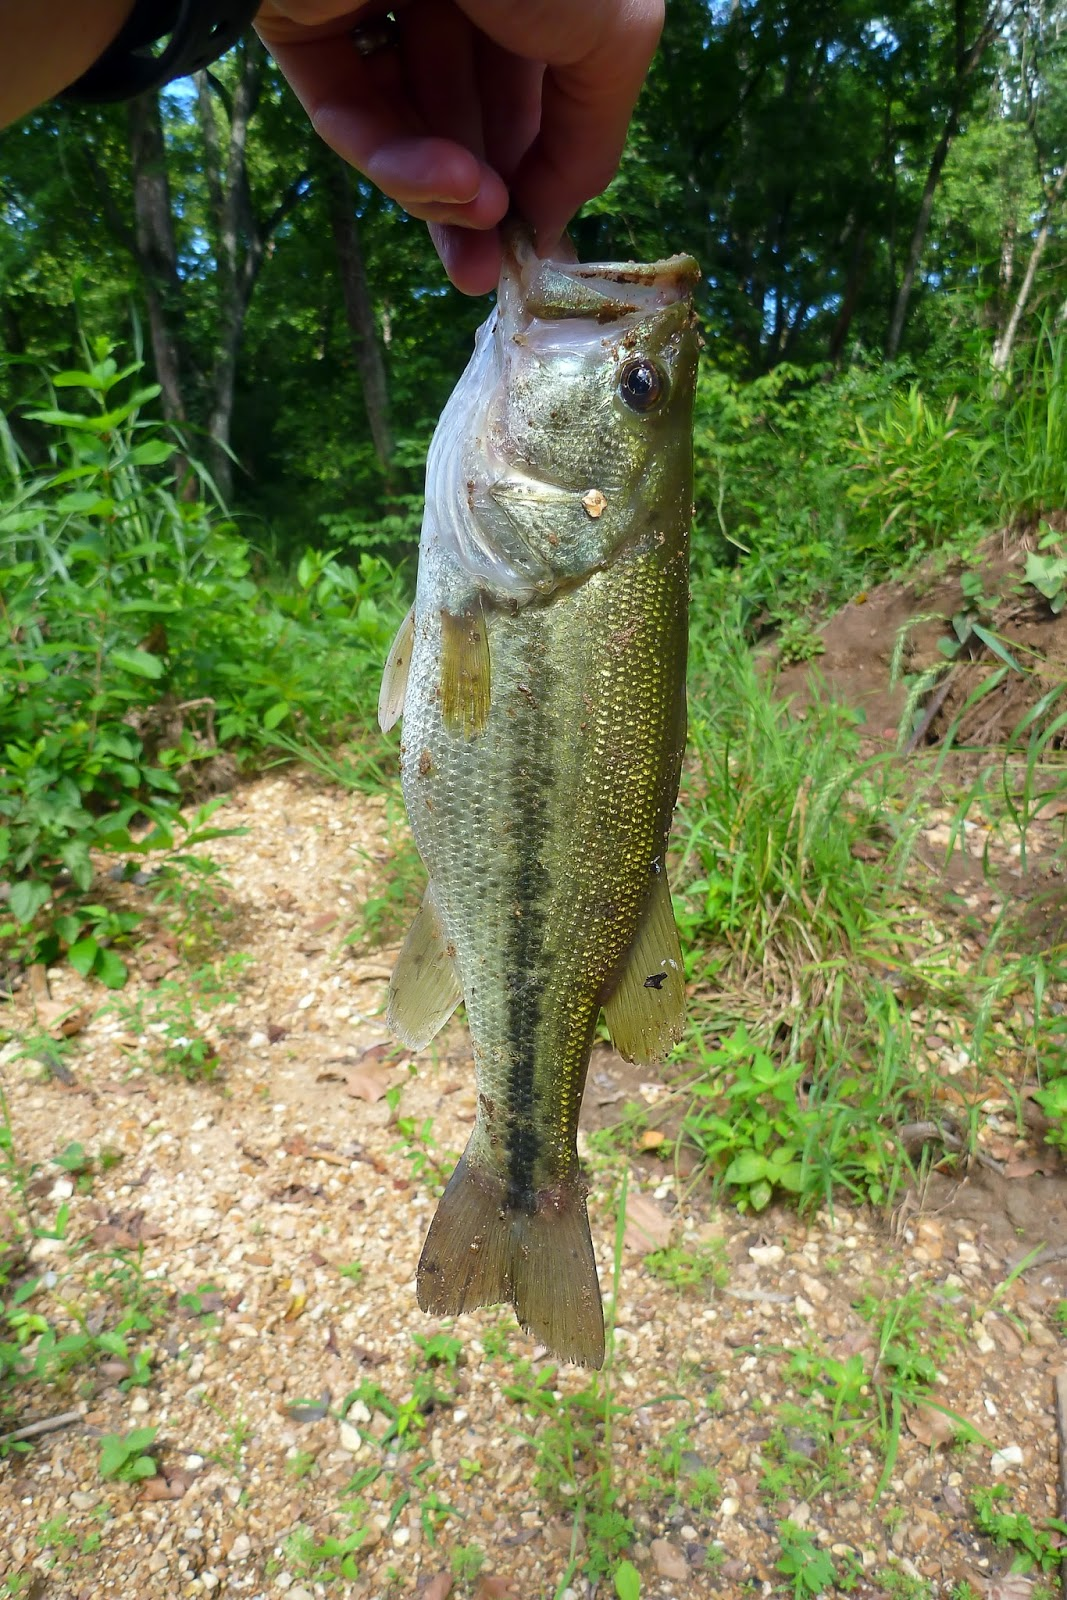 Fishing in central missouri northern ozarks for Missouri bass fishing